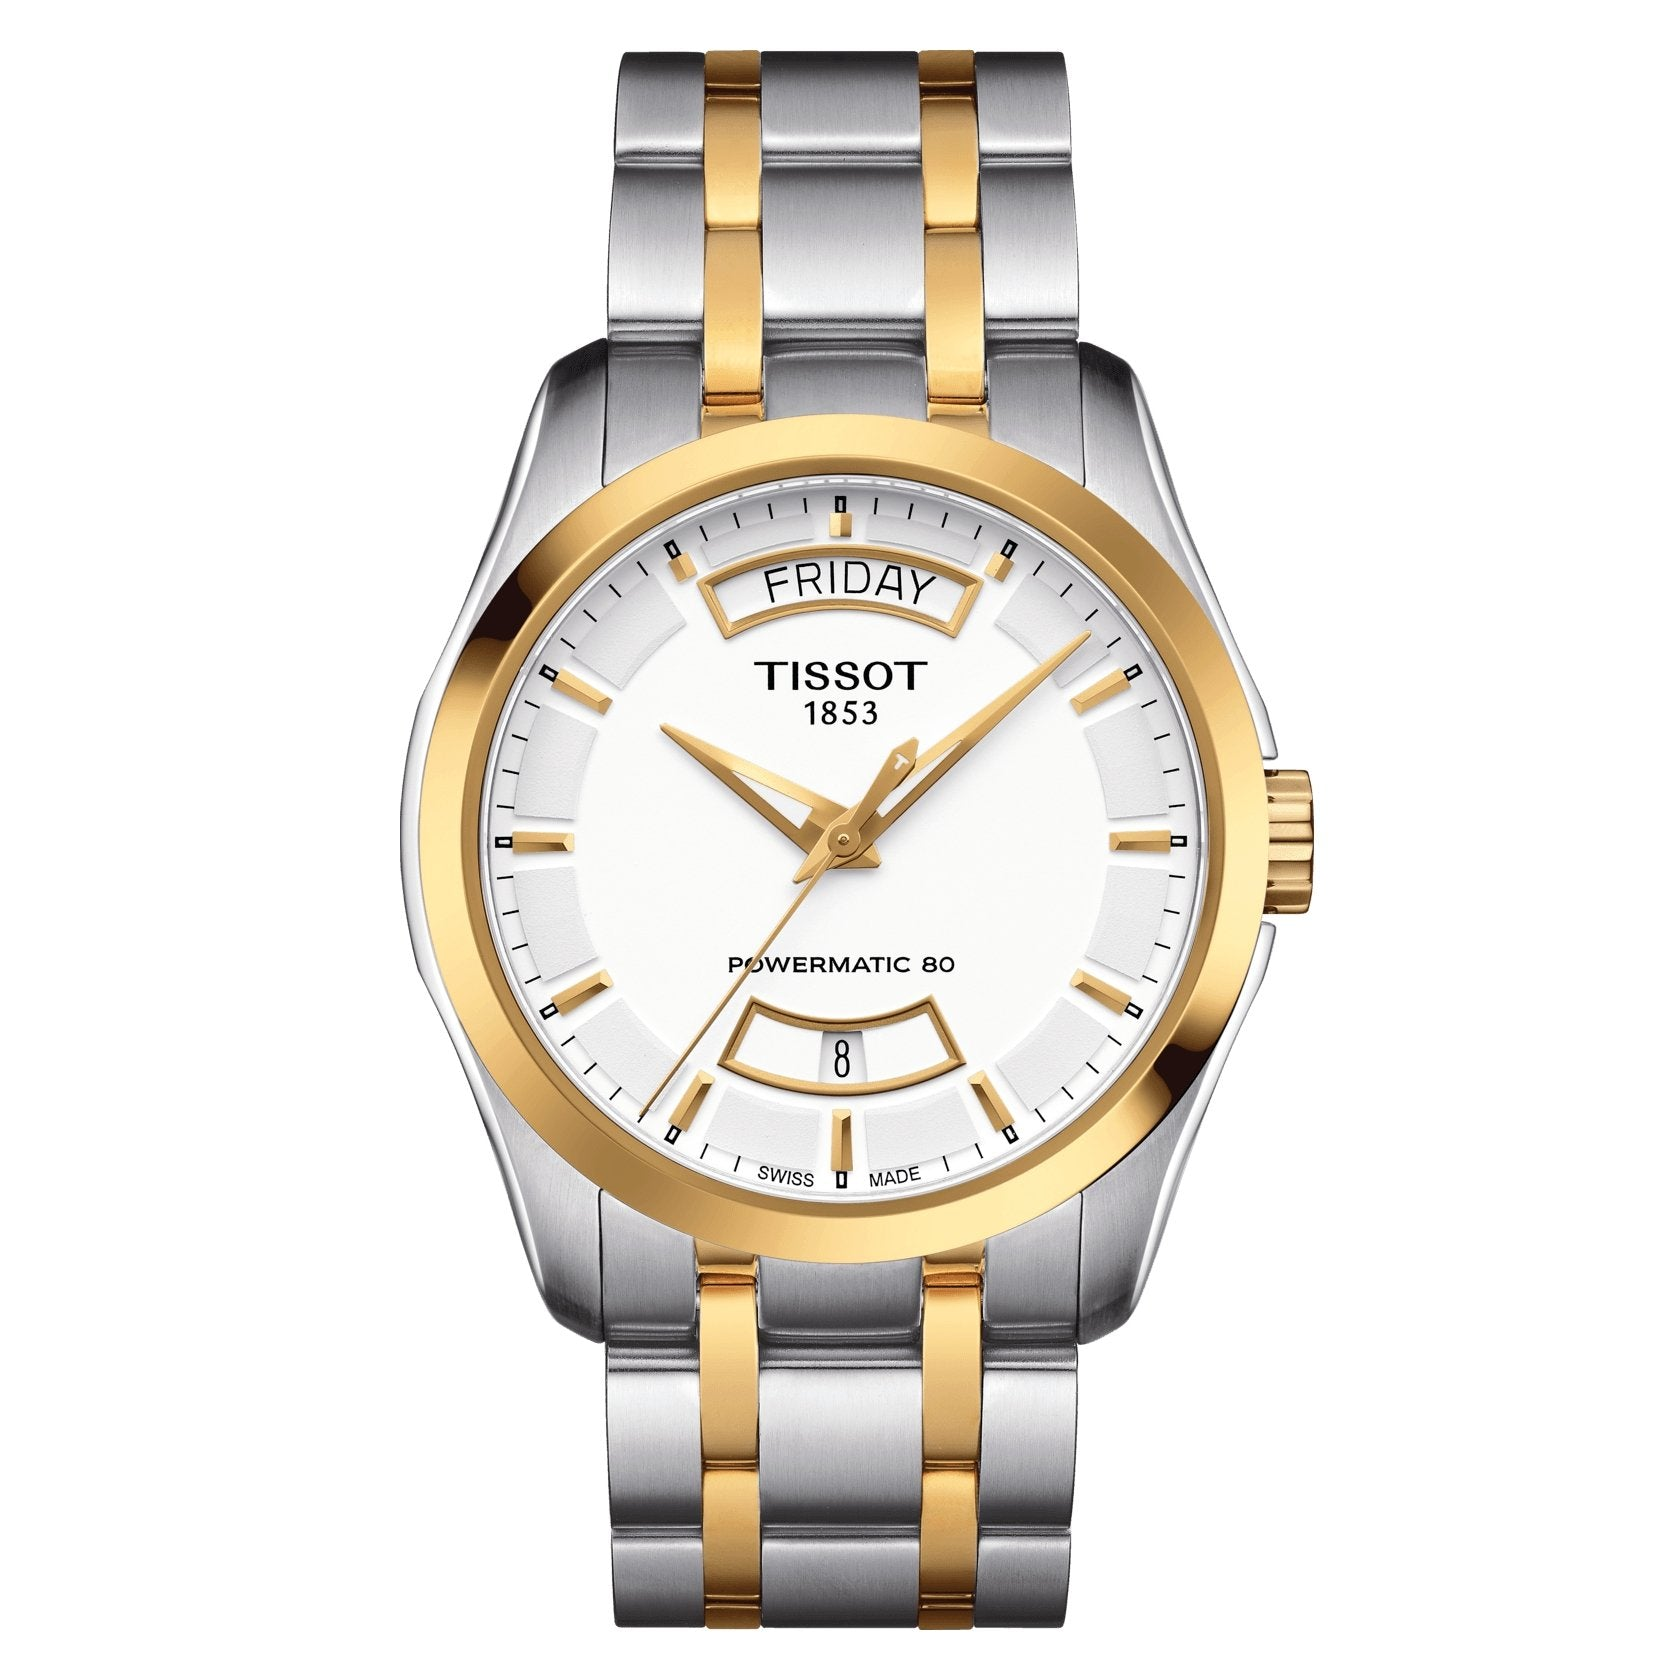 Tissot T-Classic Powermatic 80 Day Date Two Tone - Watches & Crystals